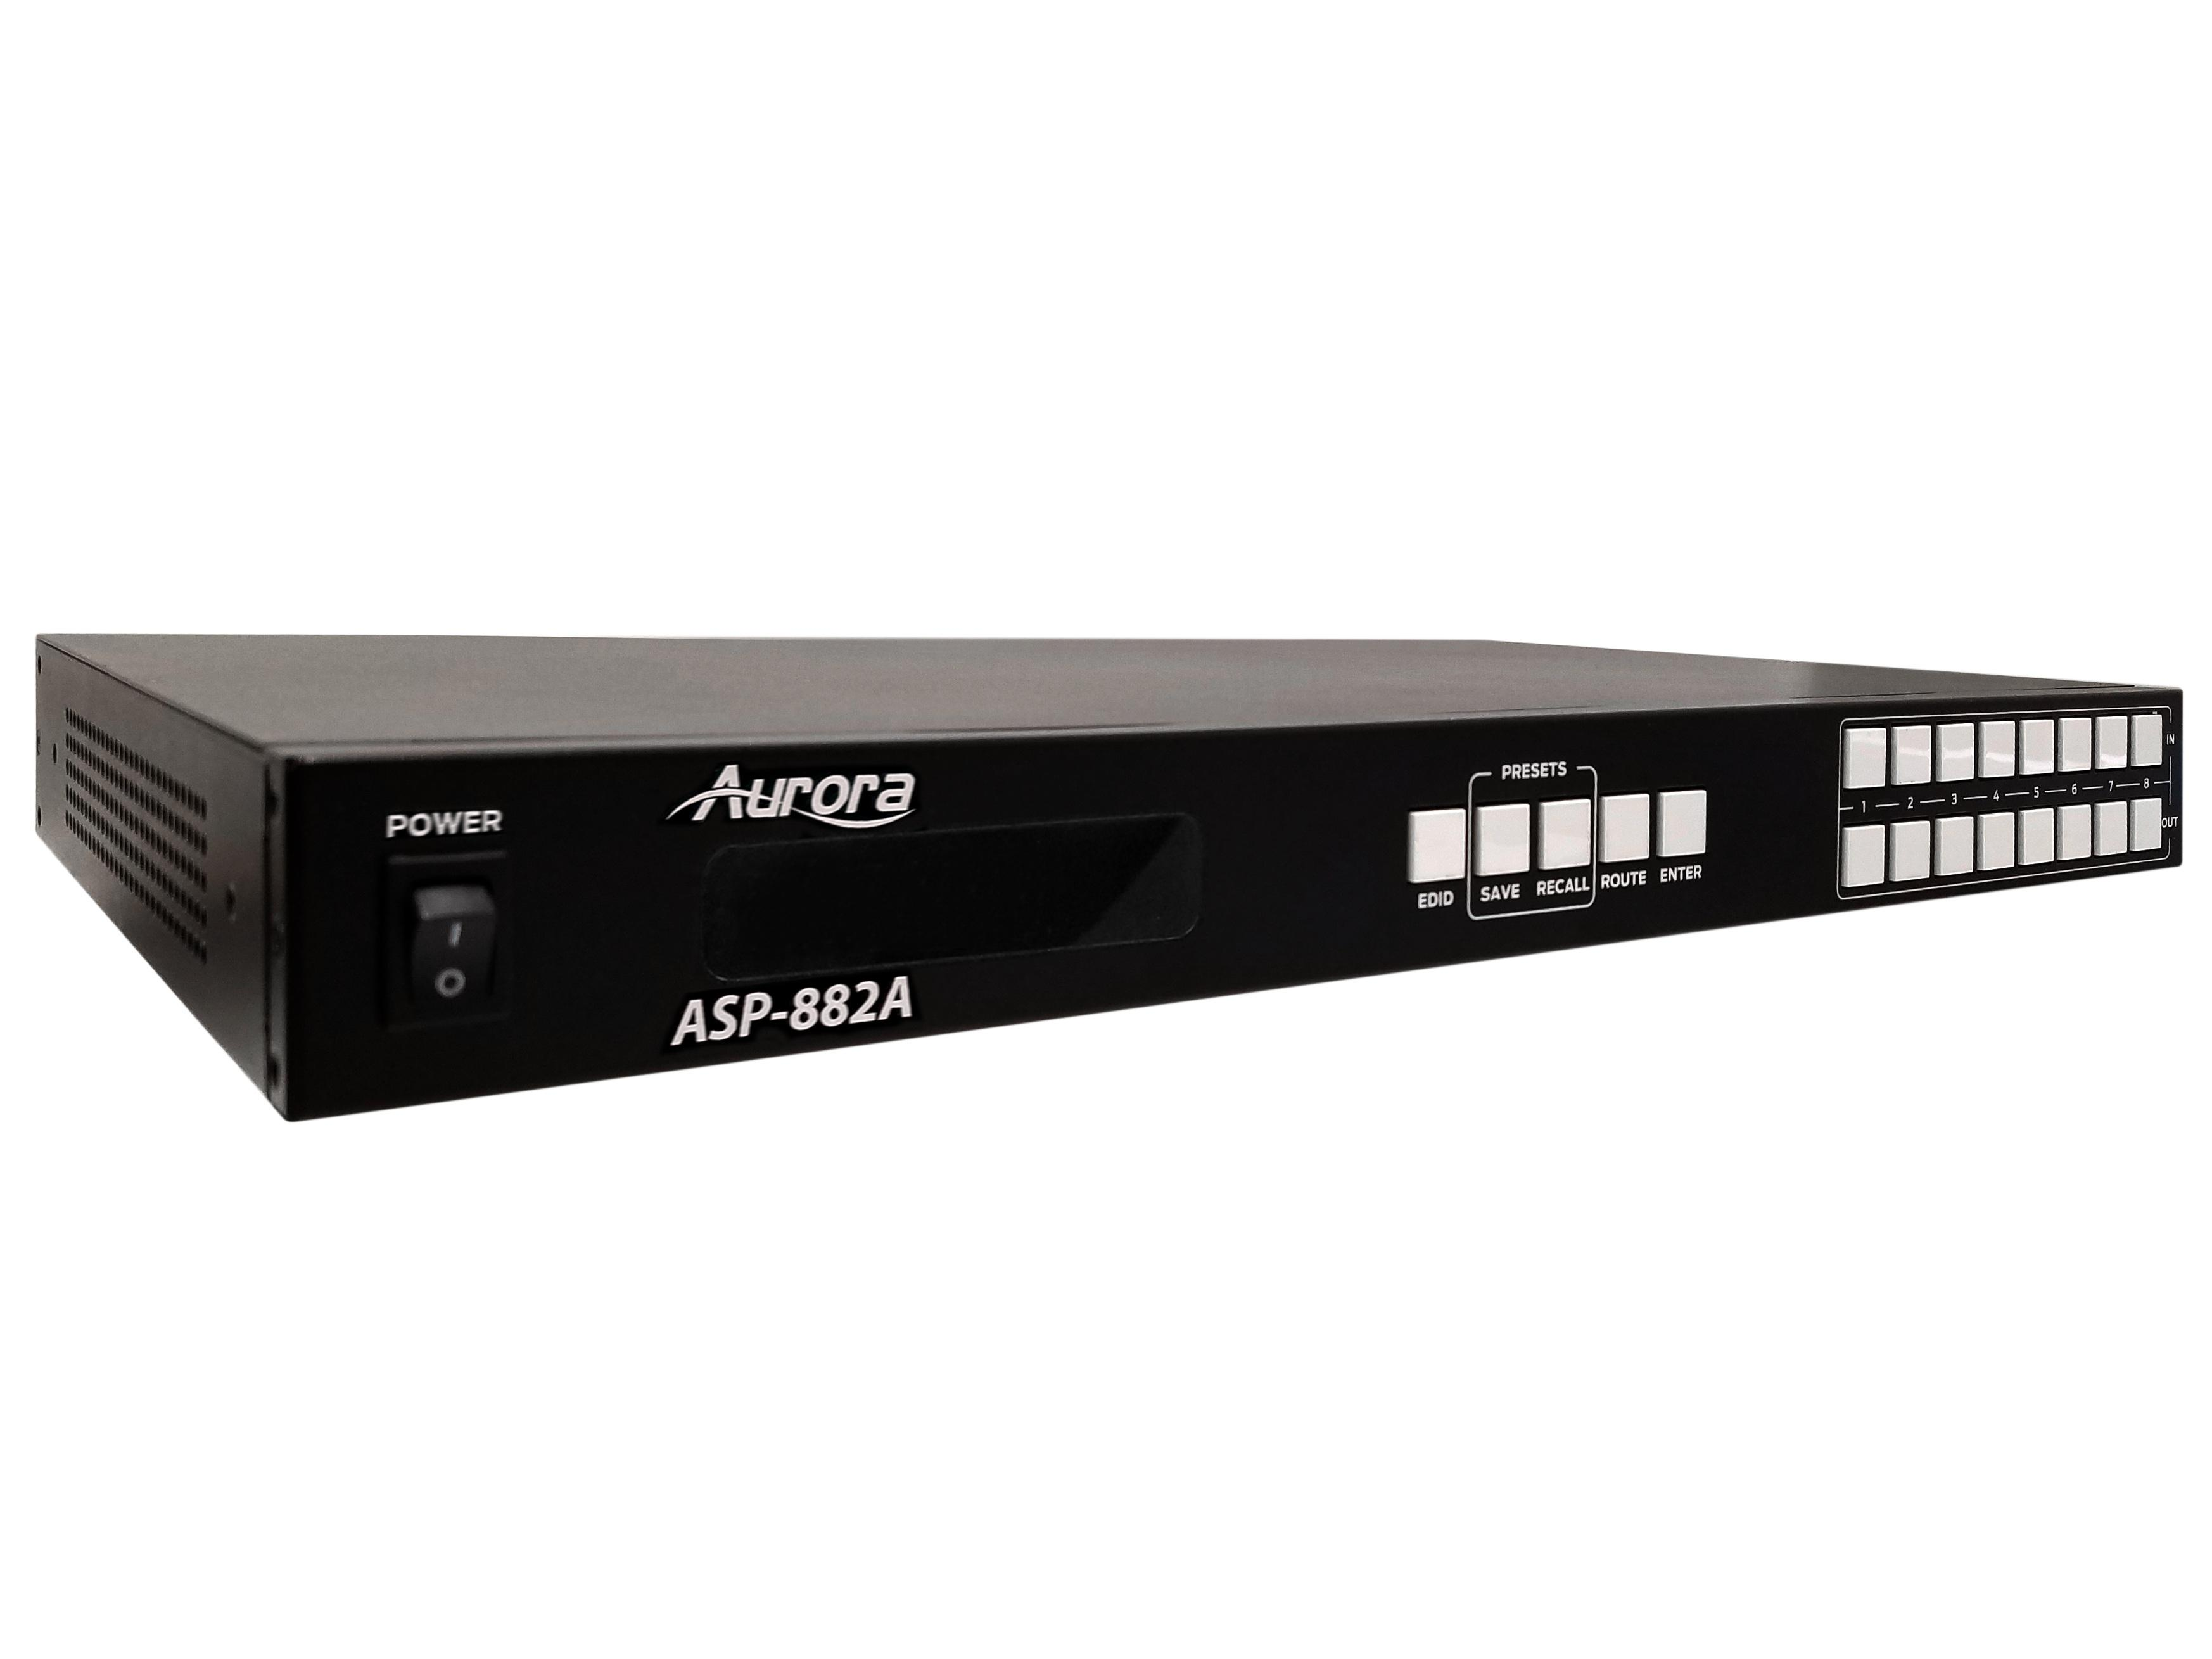 ASP-882A 8x8 HDMI 2.0A Matrix Switcher 4K60Hz UHD by Aurora Multimedia